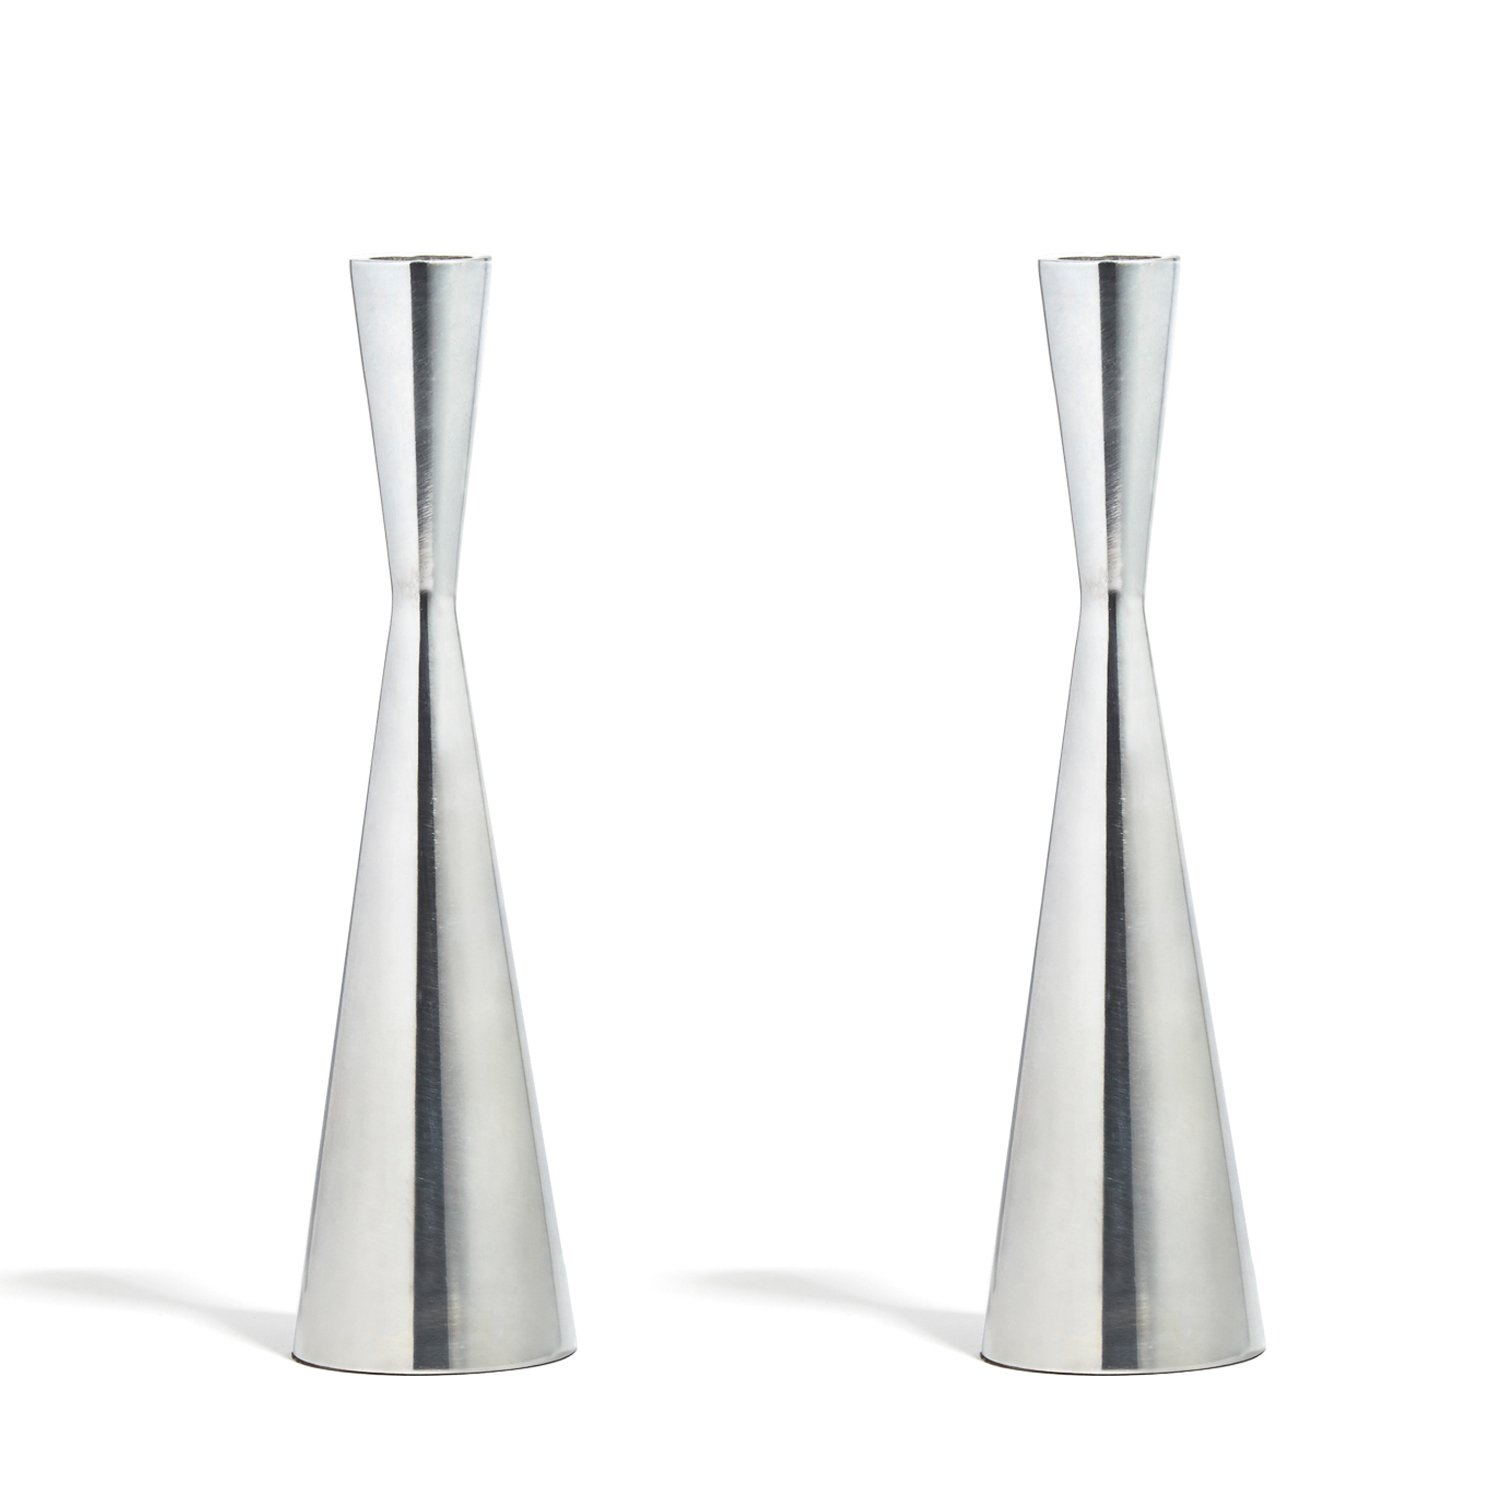 7.5 Inches Metal Fits All Standard Size Candlesticks Hourglass Shape LampLust 2 Brass Finished Taper Candle Holders